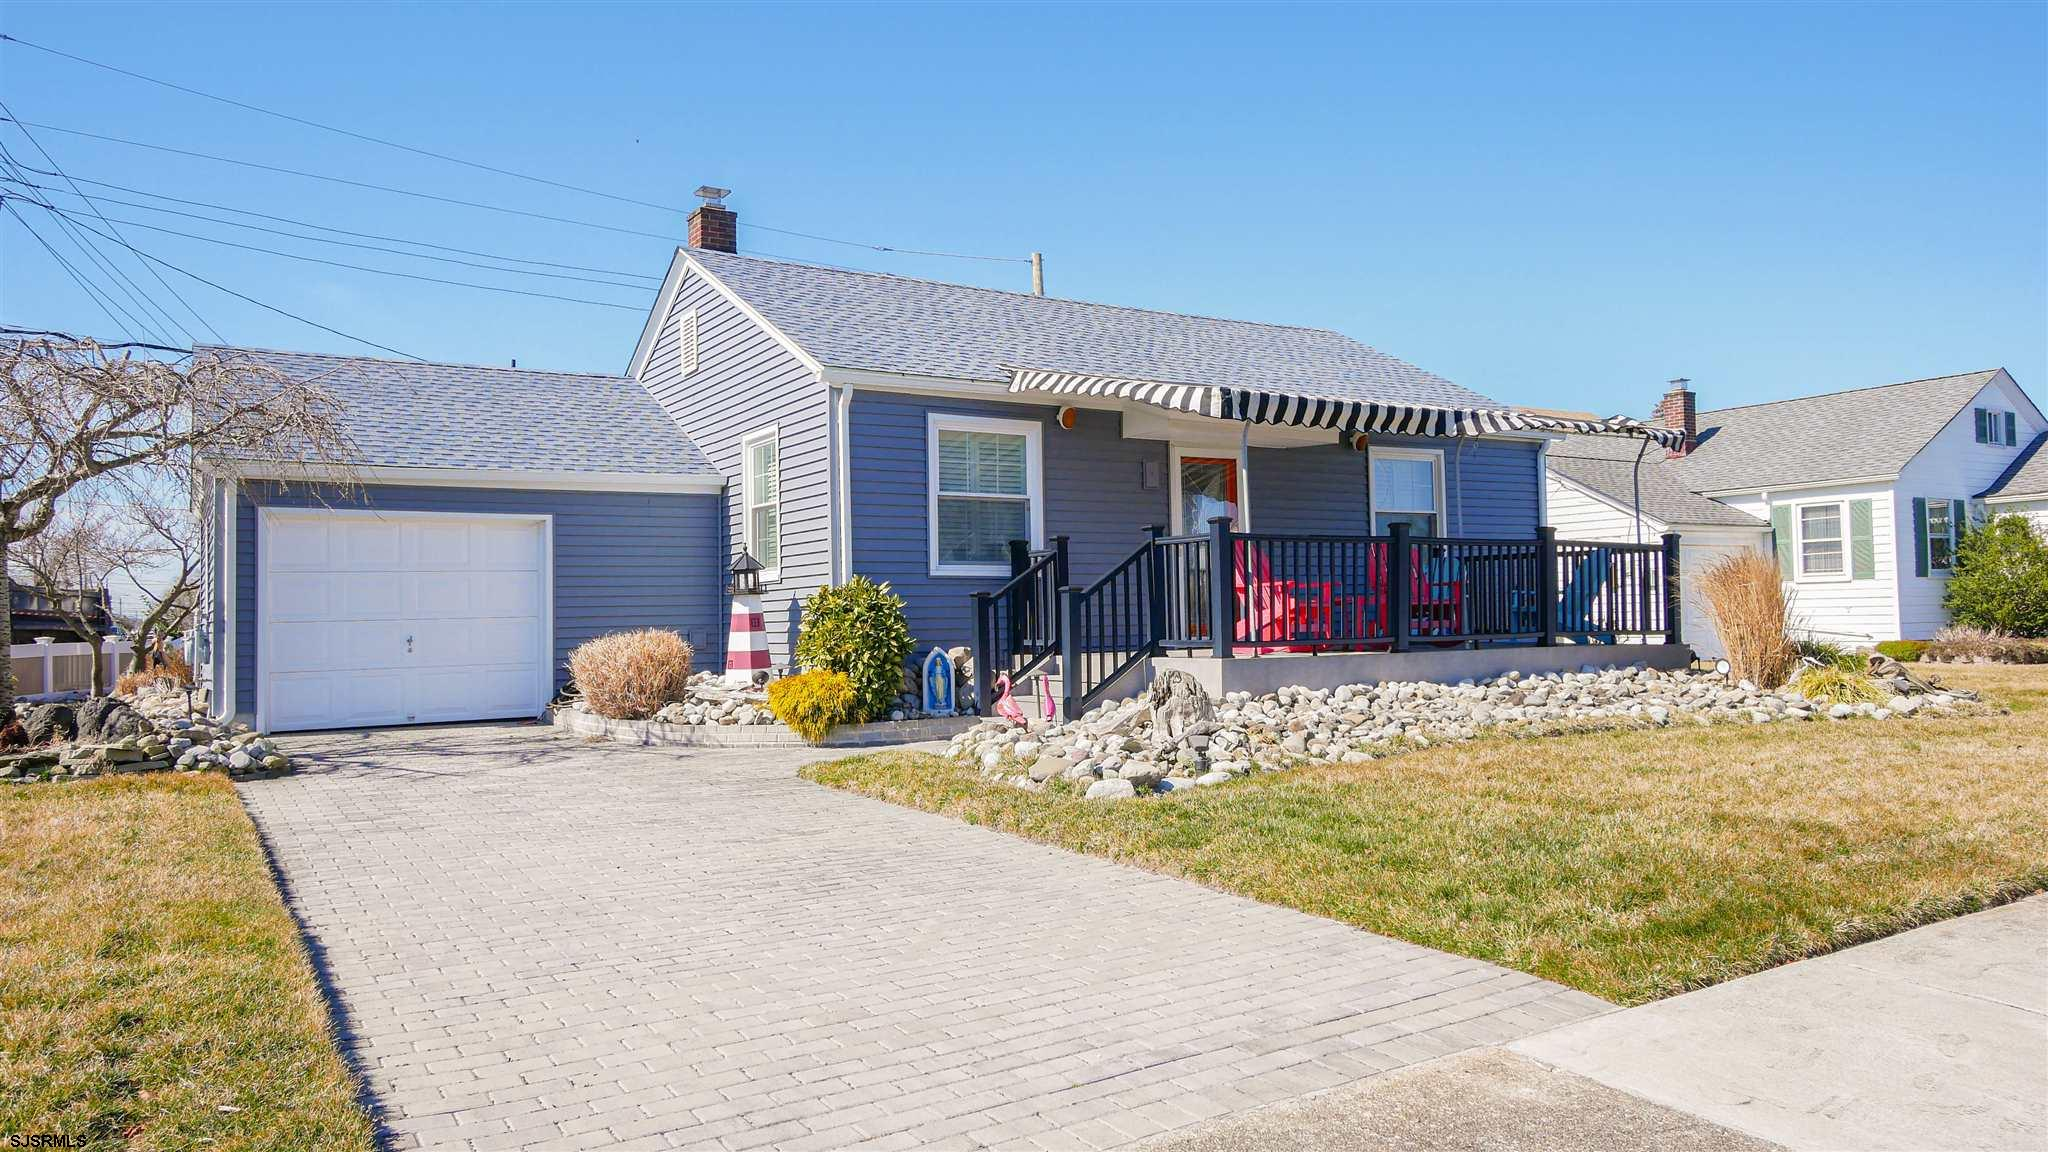 Immaculate, newly renovated rancher located on a nice sized corner lot in Ventnor.  This 3 bedroom,